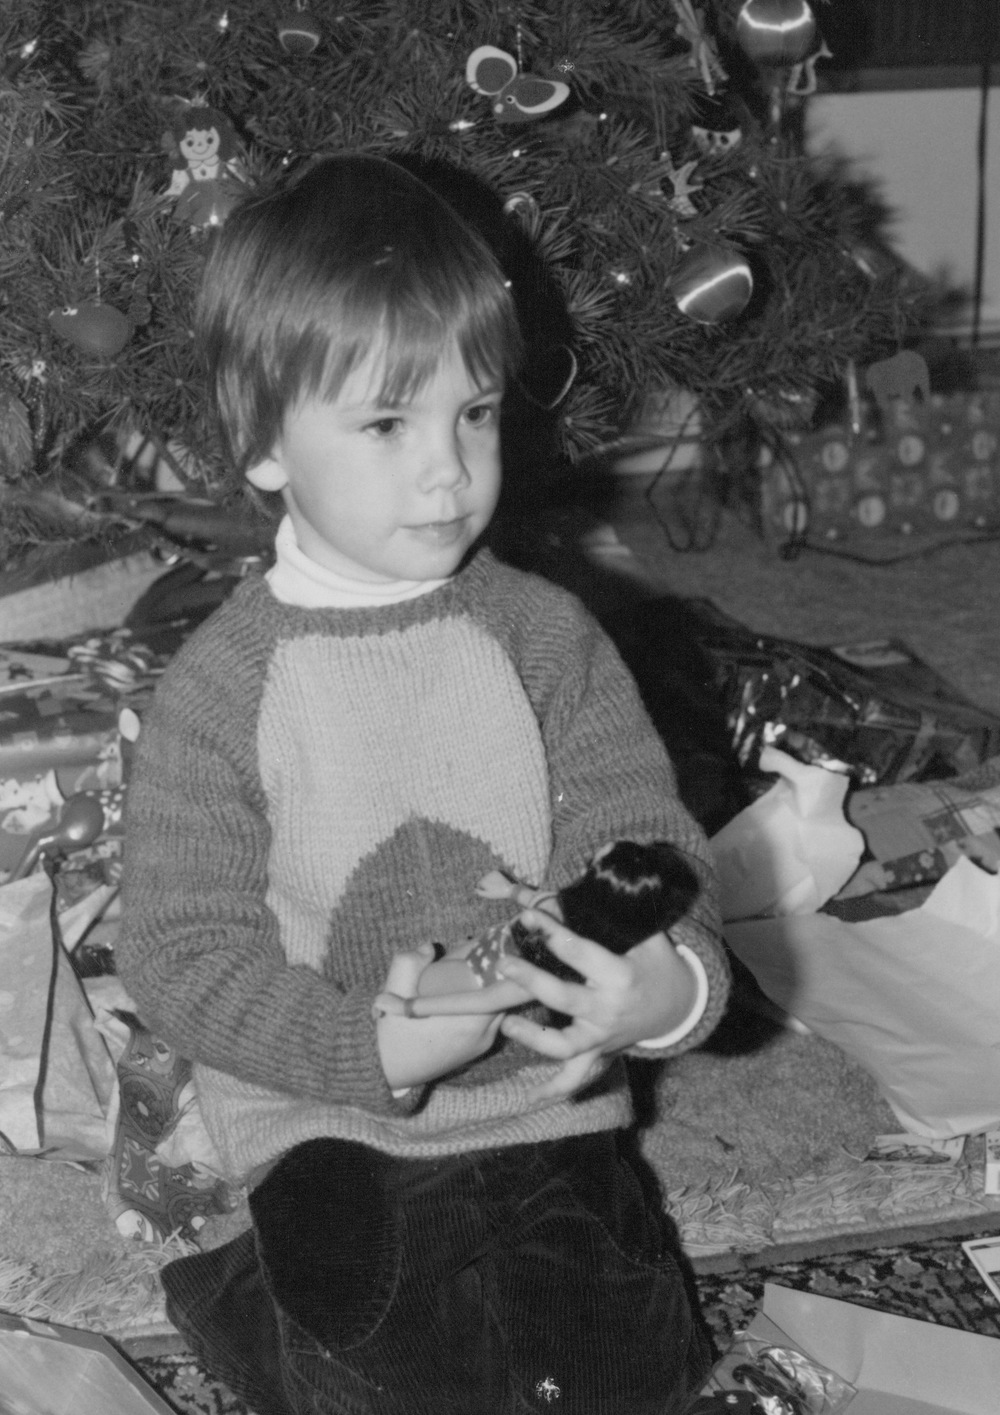 Notice the beatific expression on the author's face as he holds his newly unwrapped Wonder Woman doll.